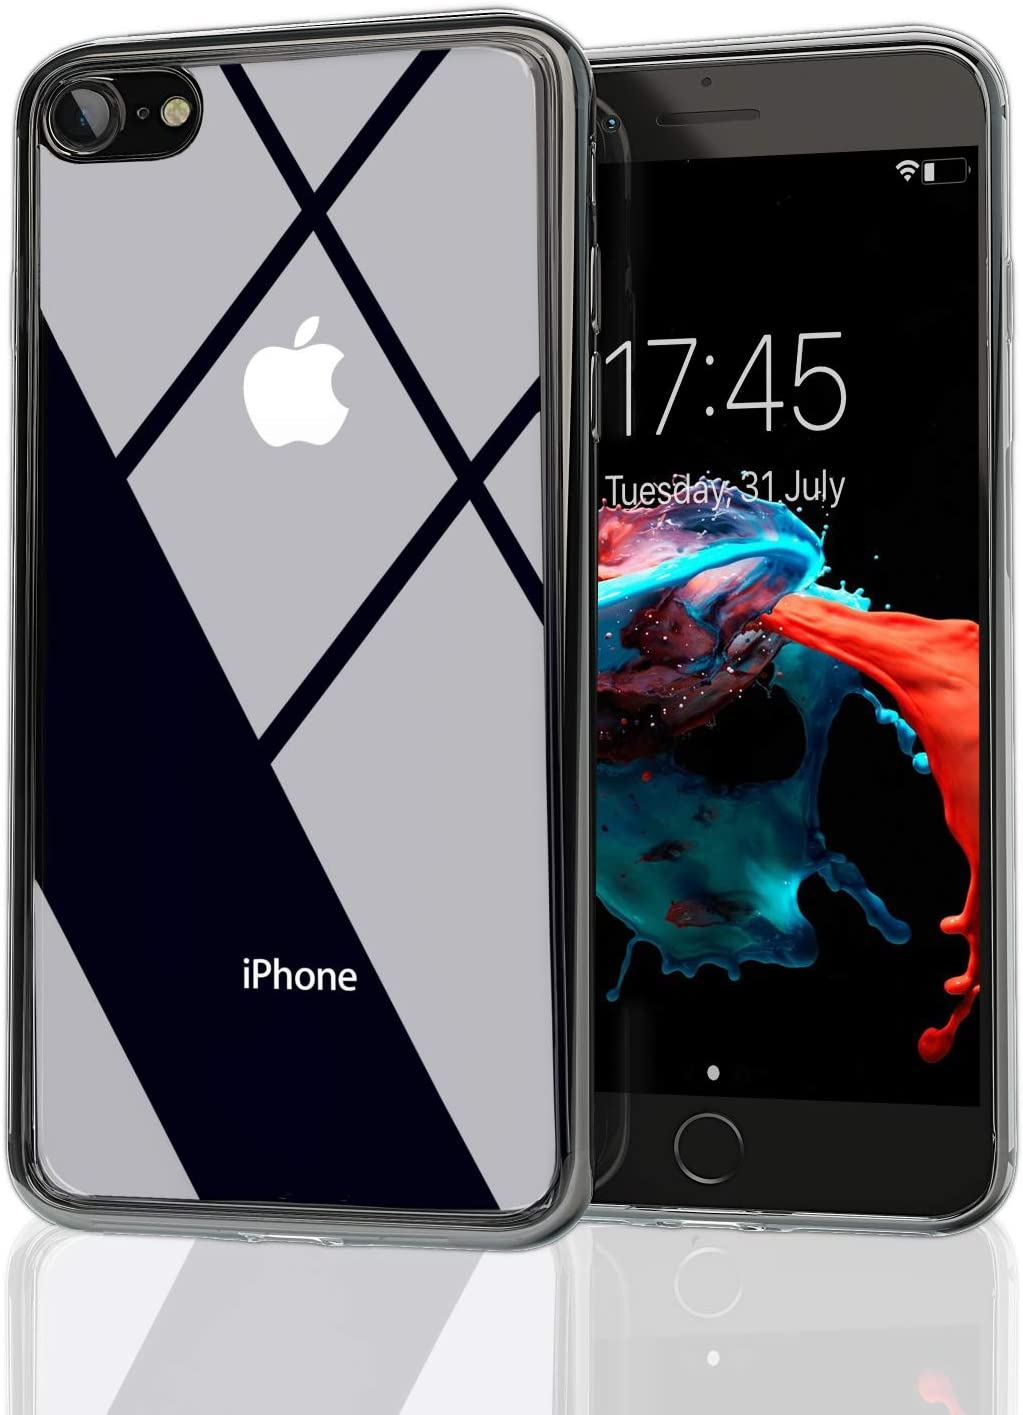 Nicexx iPhone 7 Case | iPhone 8 Case | iPhone SE 2020 | Transparent Clear Case | Soft TPU Bumper Drop Protection | Wireless Charging | Compatible with iPhone 7/8 / SE 2020